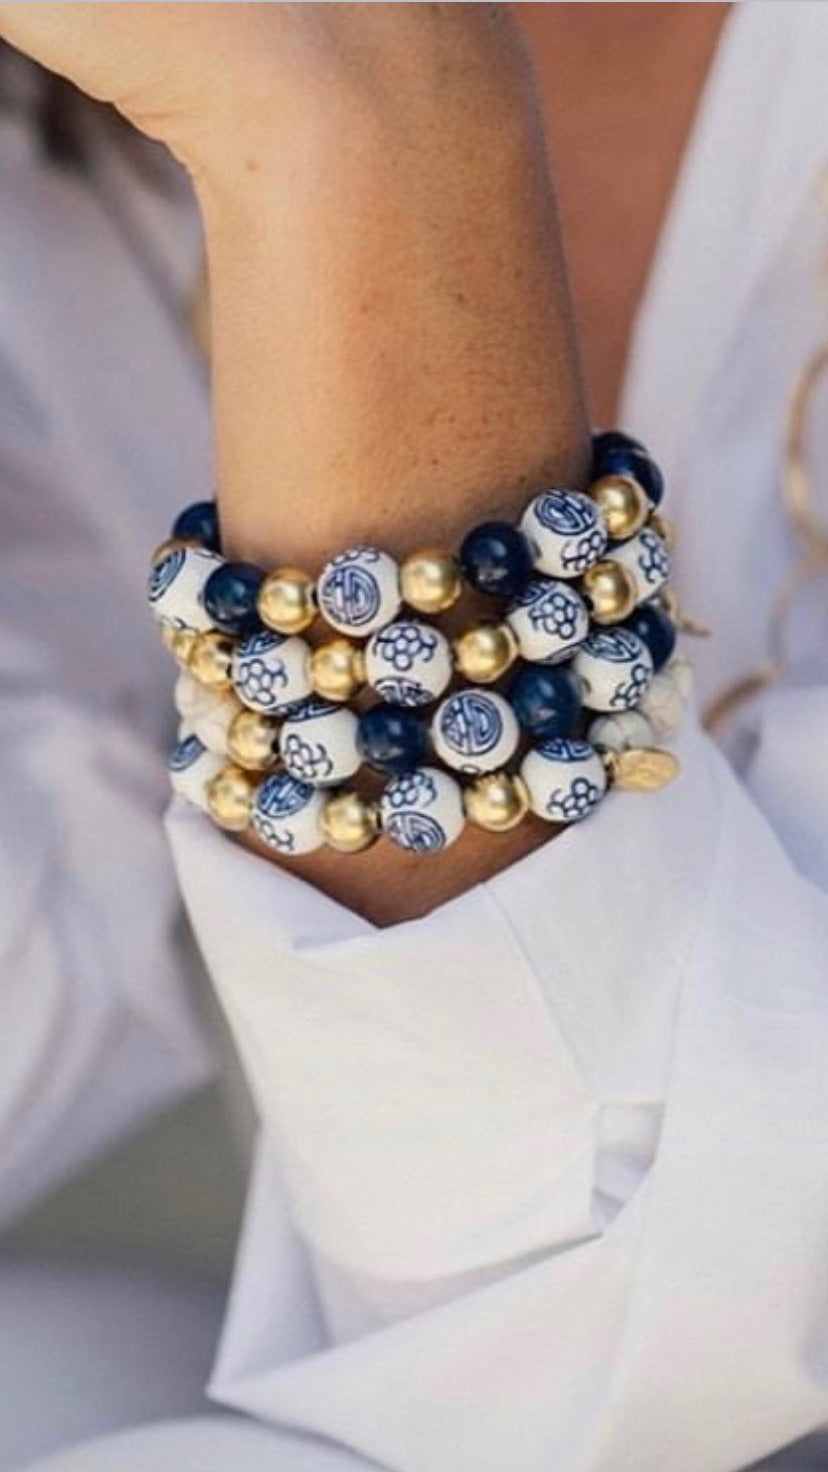 Blue and White Bracelets